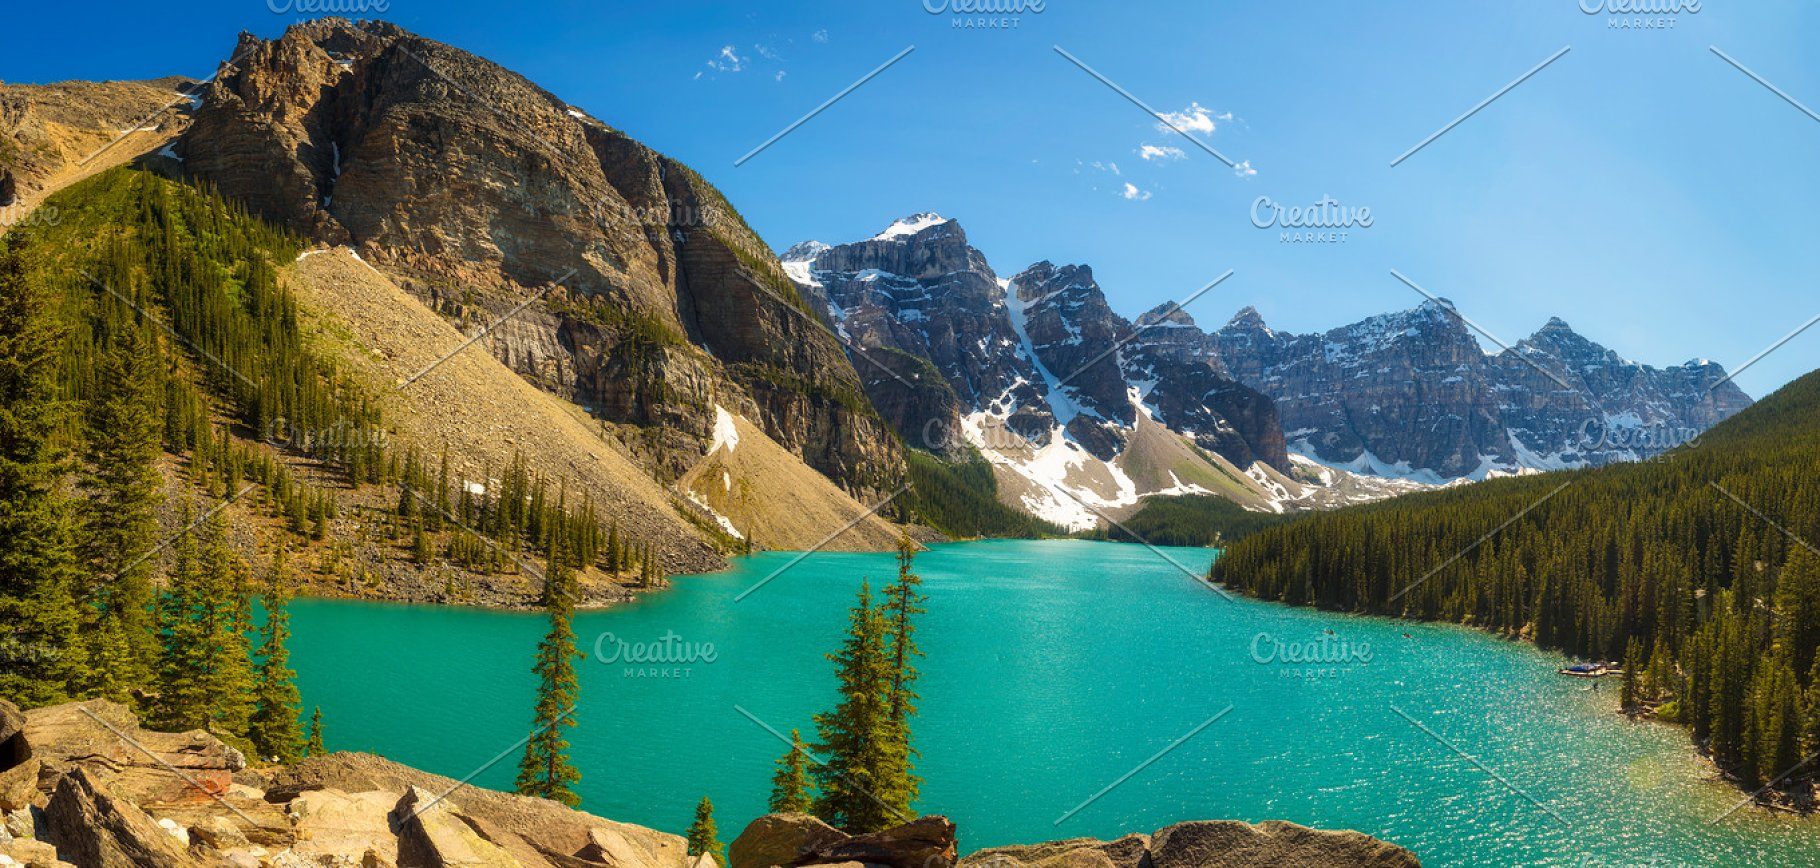 Sunny Day At Moraine Lake In Banff National Park Alberta Canada